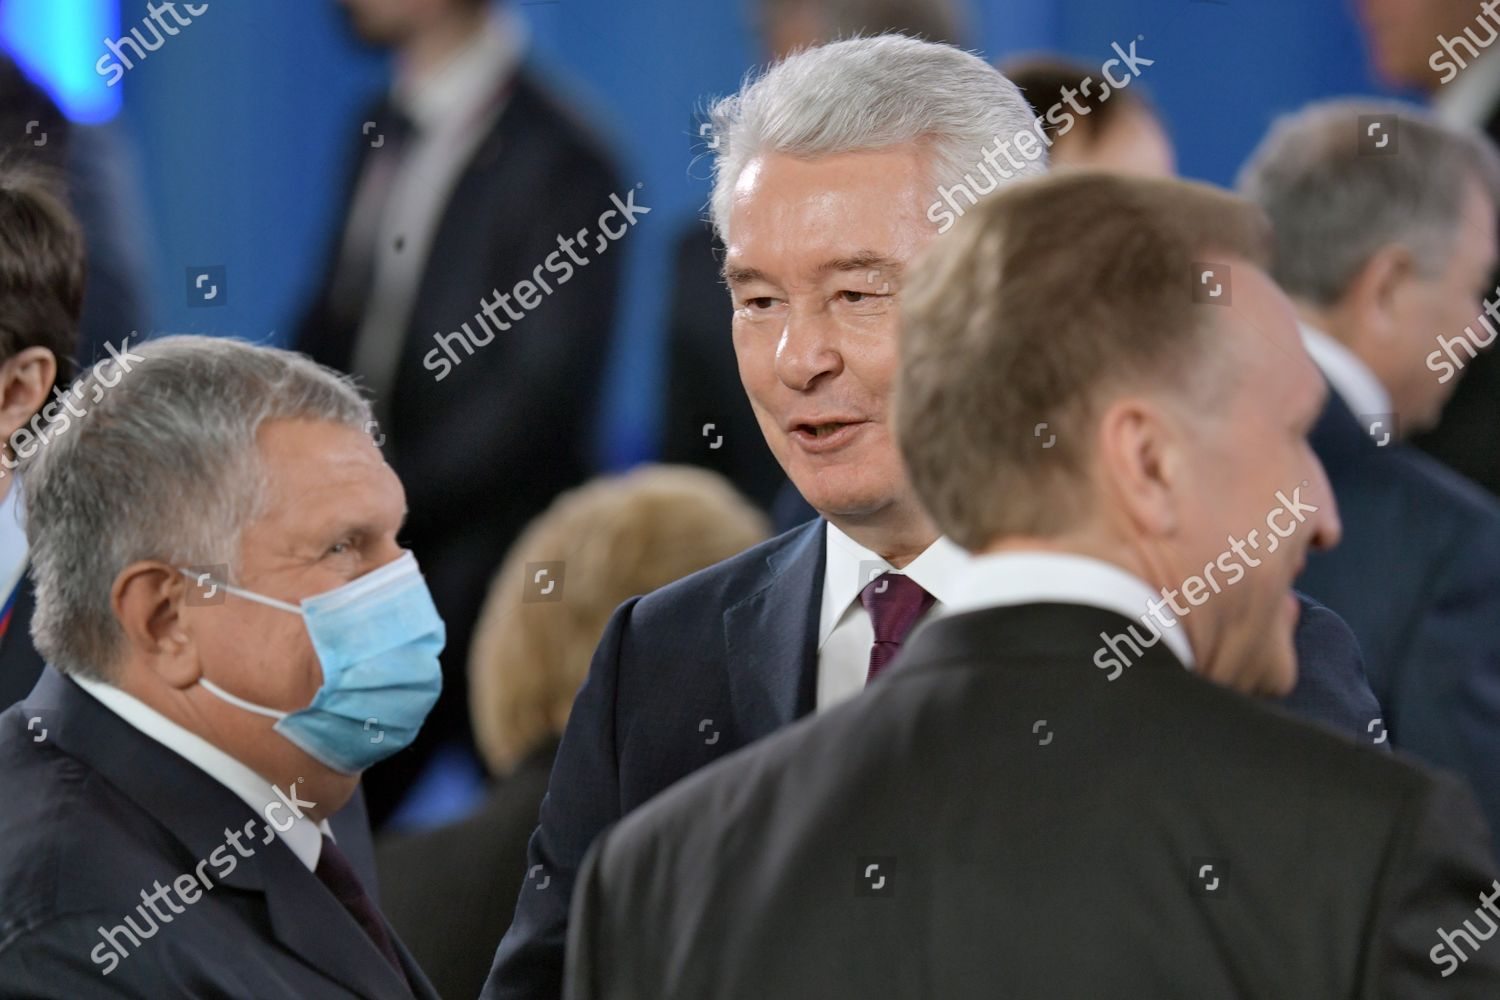 Stock photo of Annual Address of Russian President Vladimir Putin to the Federal Assembly, Manezh Central Exhibition Hall, Moscow, Russia - 21 Apr 2021